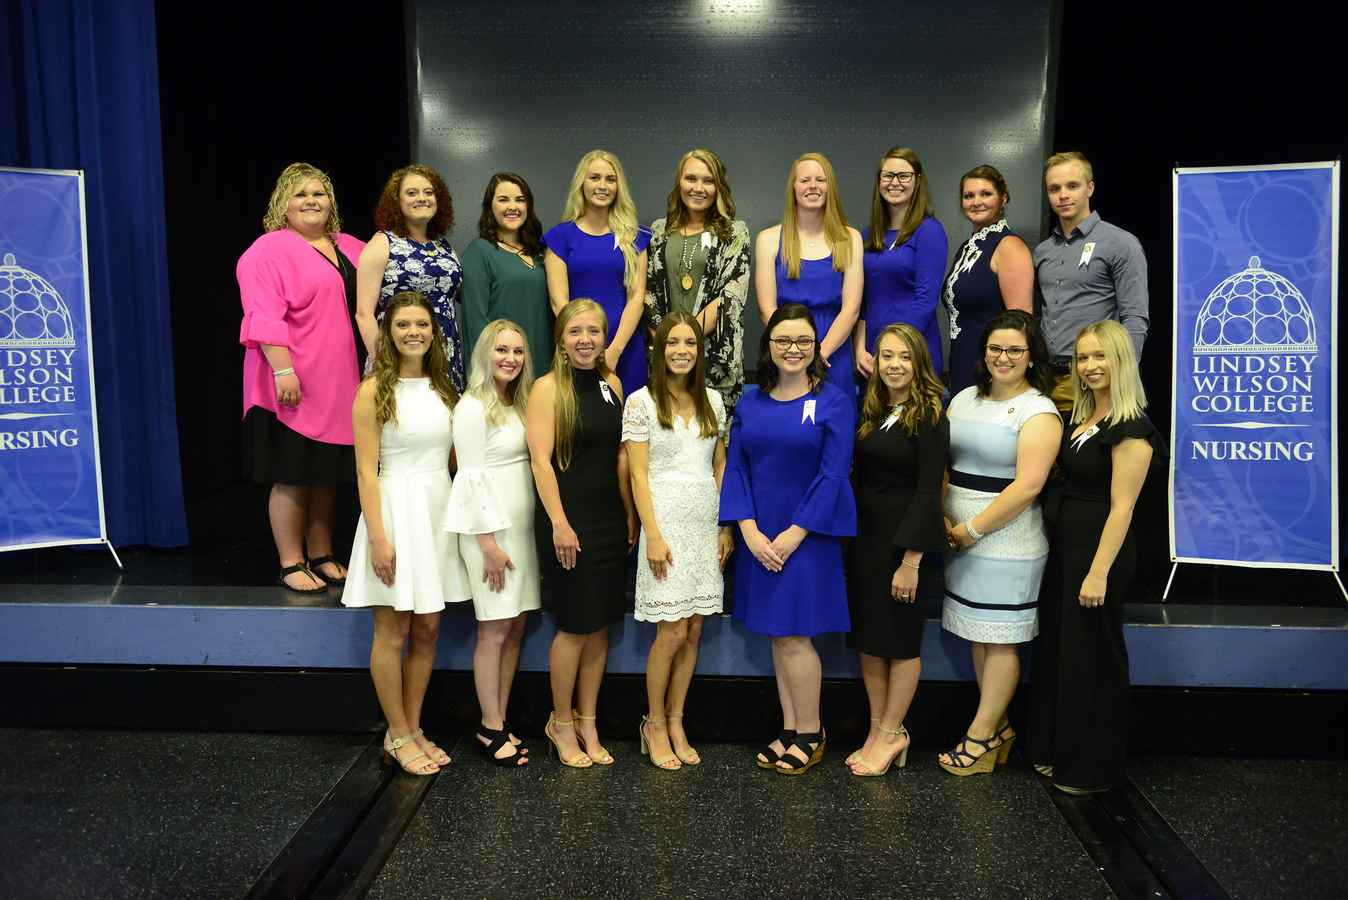 Graduates of LWC's Nursing Program Post 100 Percent Pass Rate on National Nursing Exam